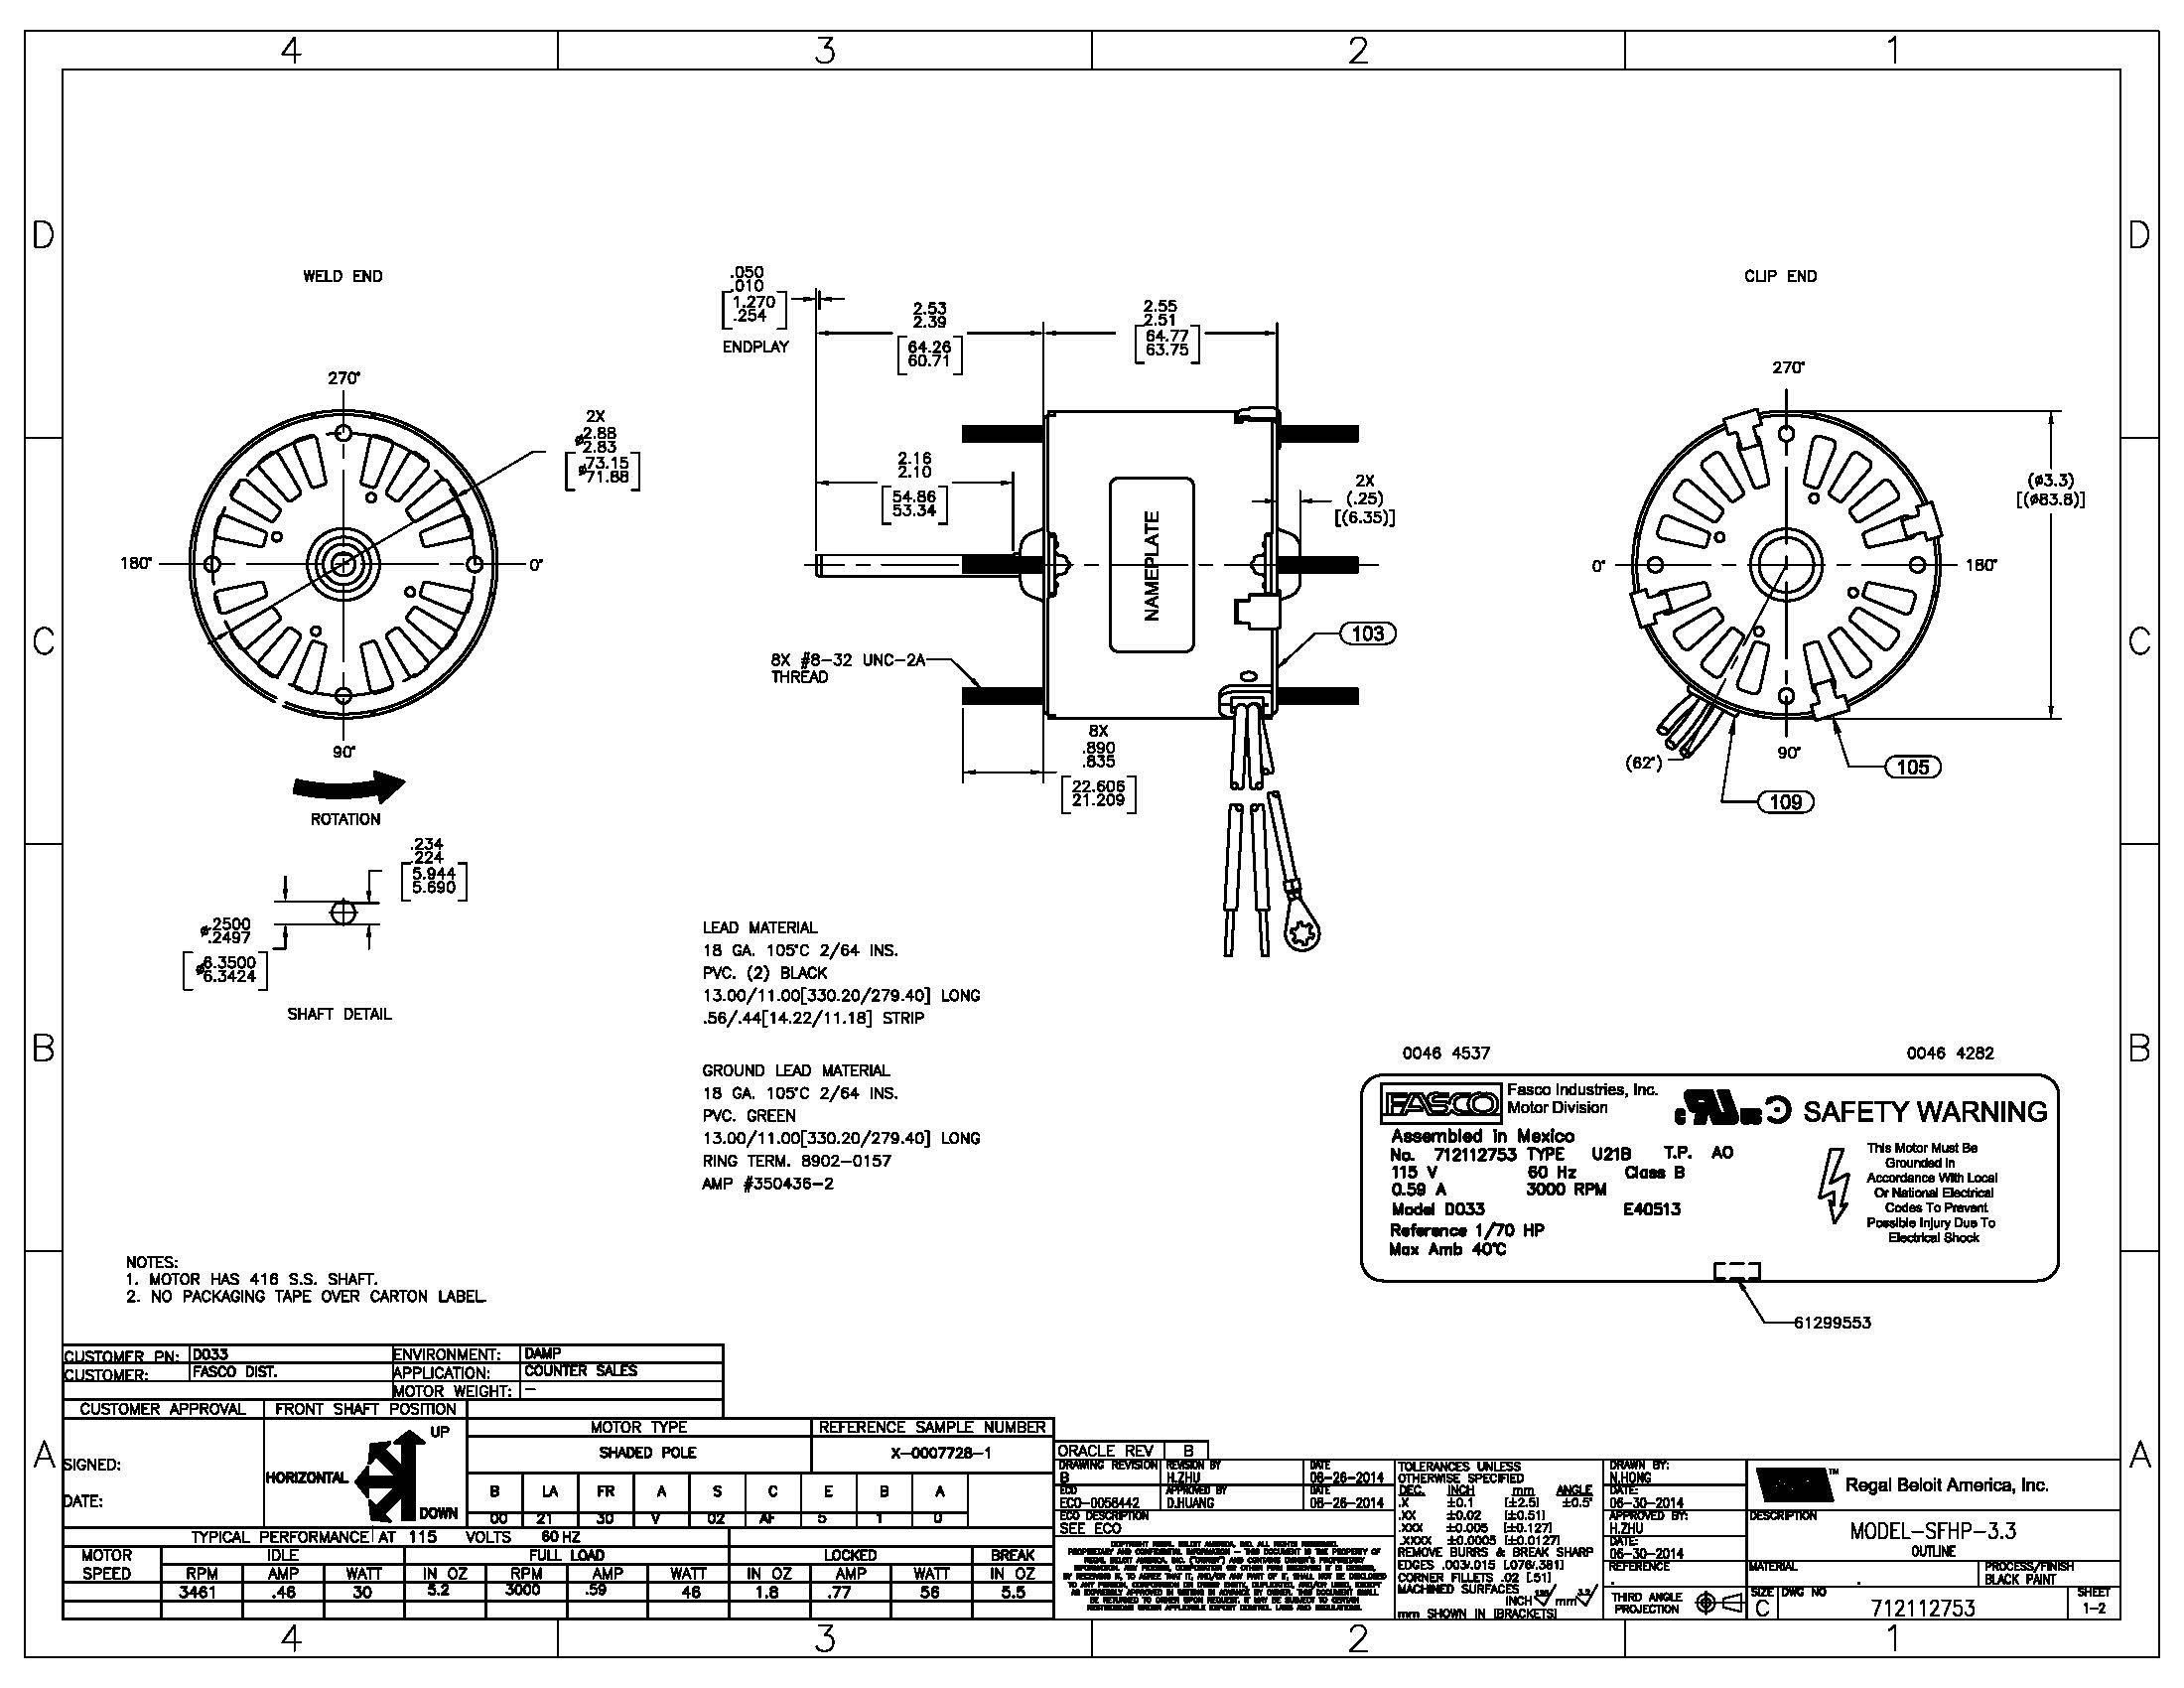 fasco motors wiring diagram wiring diagram fasco motors best wiring diagram for fasco blower motor fresh wiring diagram shaded 11h fasco motors wiring diagram detailed schematics diagram